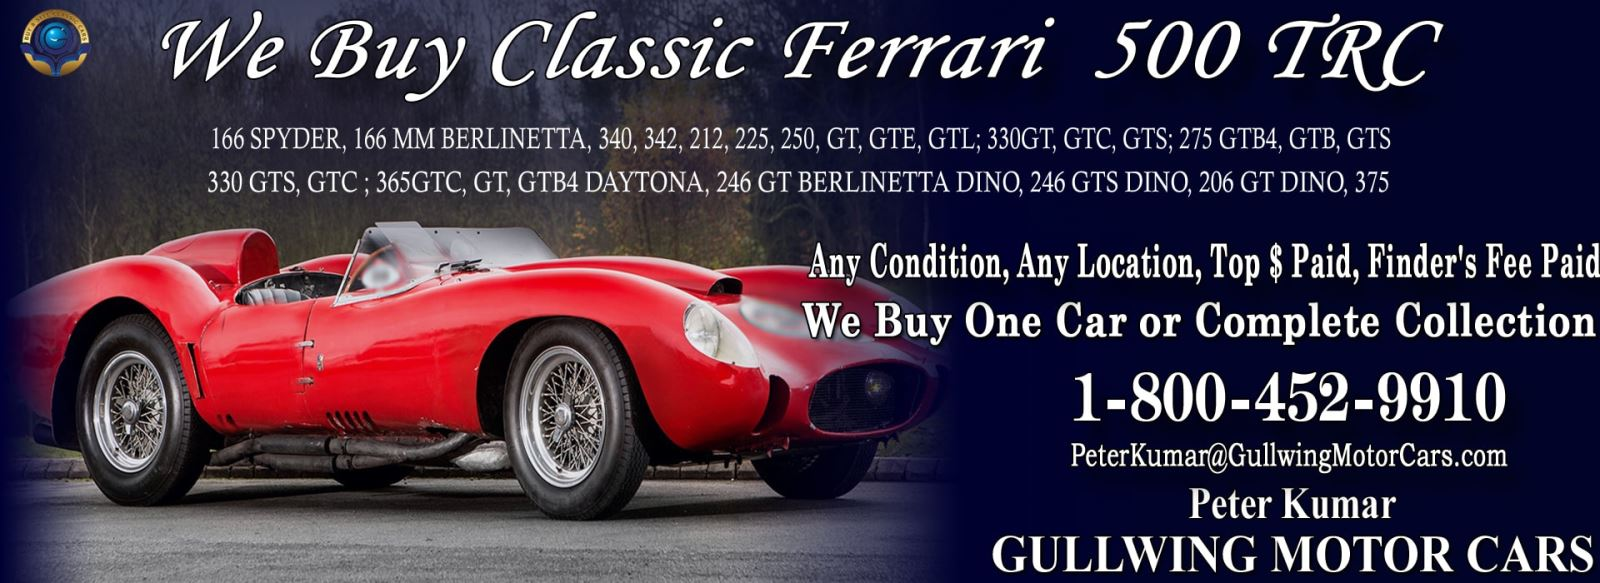 Classic Ferrari 500 TRC for sale, we buy vintage Ferrari 500 TRC. Call Peter Kumar. Gullwing Motor